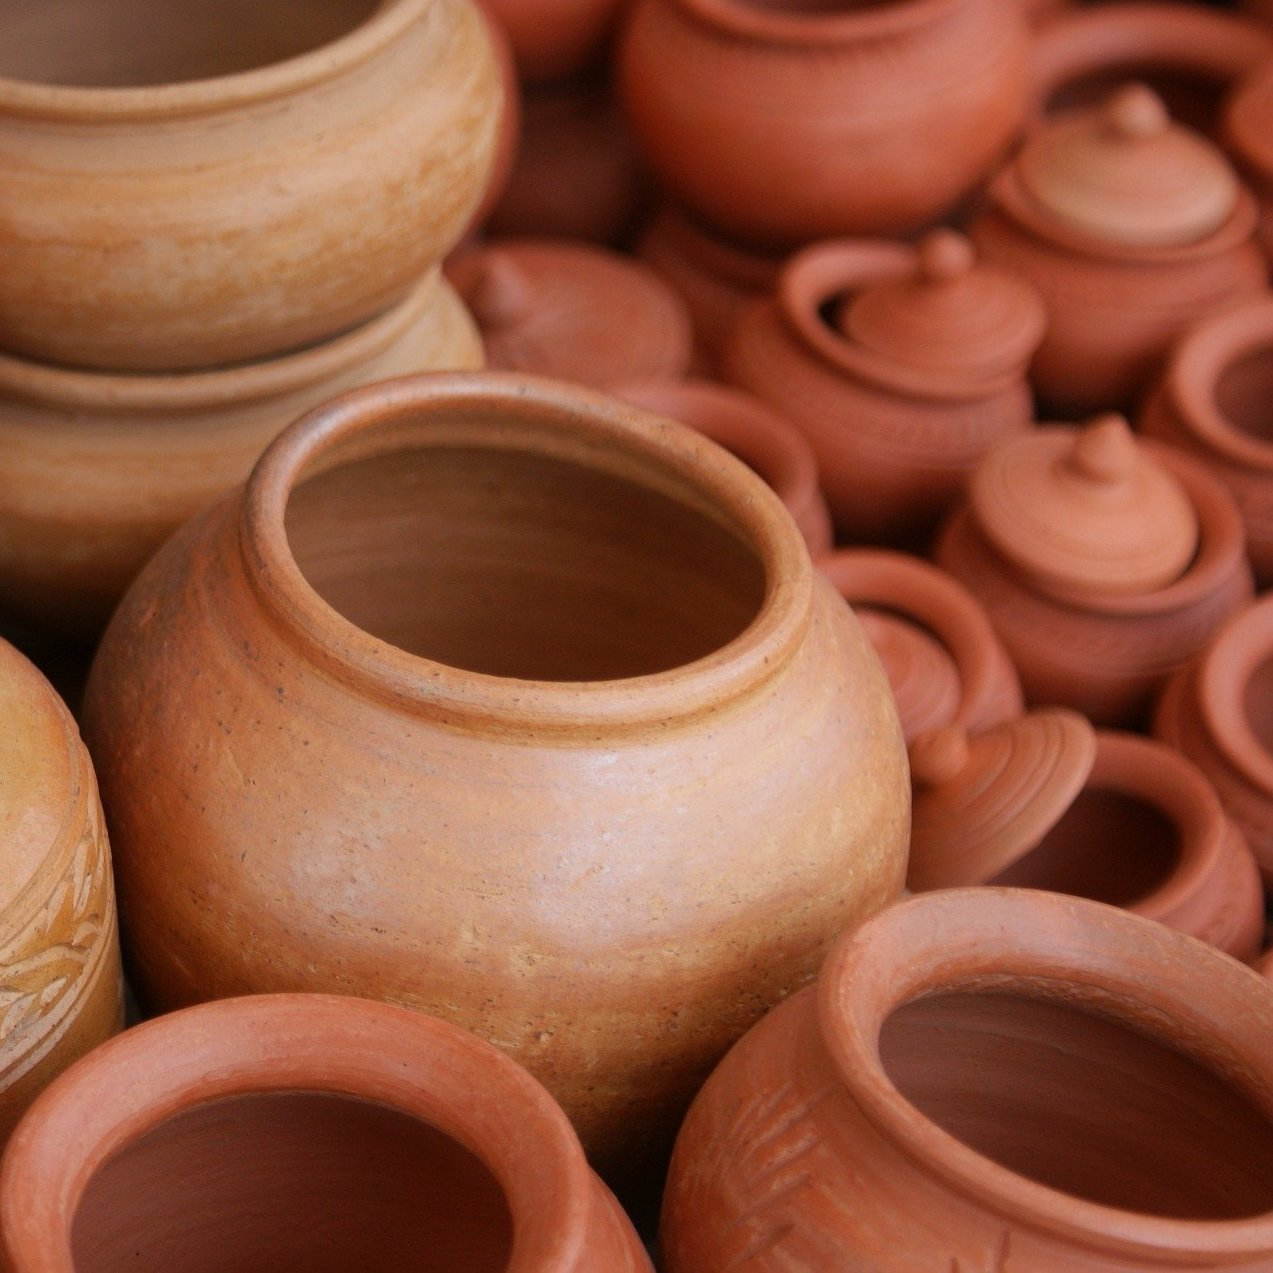 Guide to Ceramics: Types, Materials, & How-To Learn